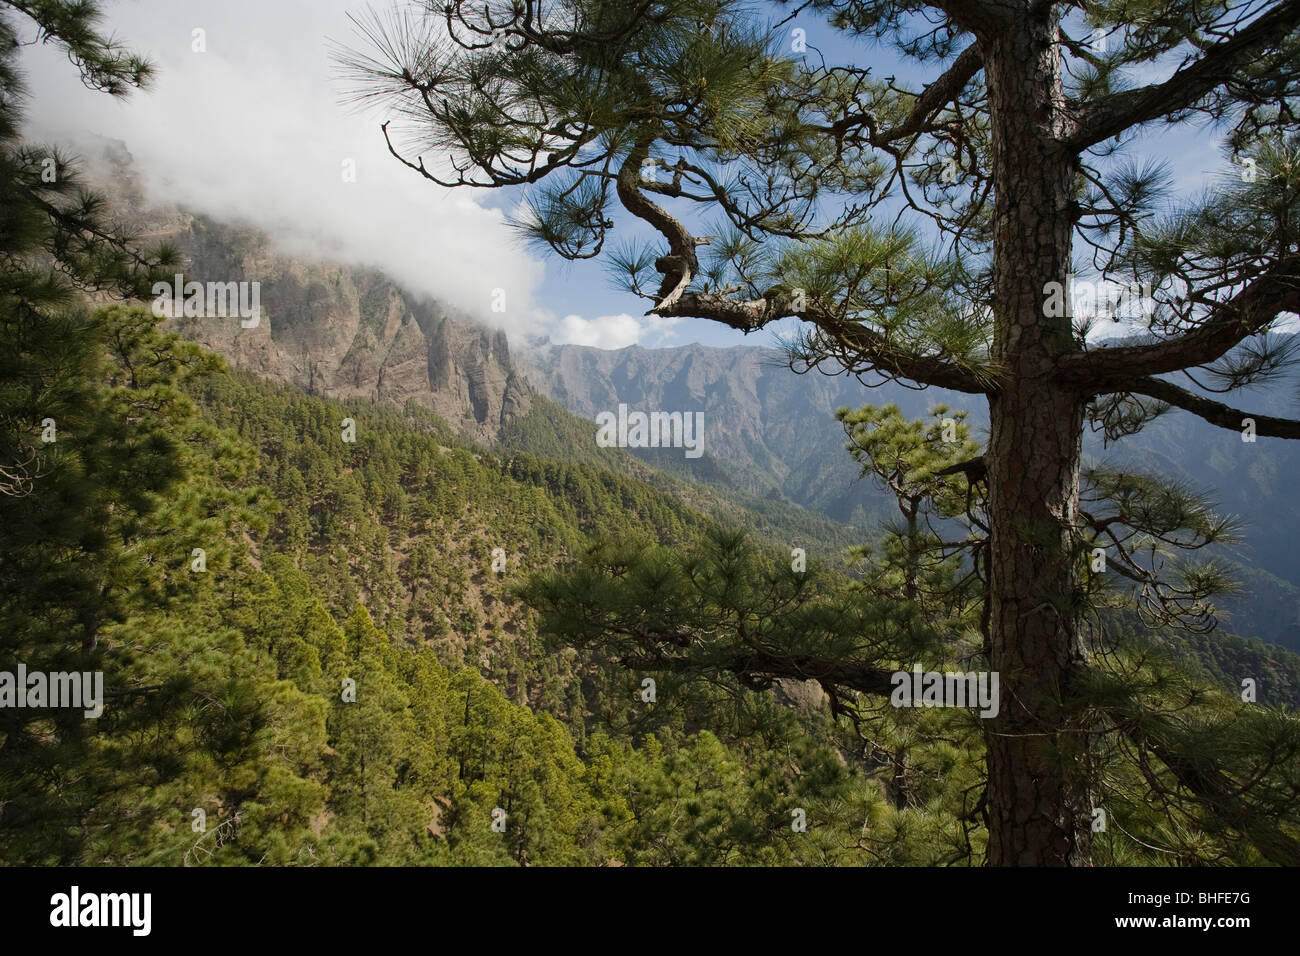 Viewpoint on Los Brecitos (1030m), National ParK, Parque Nacional Caldera de Taburiente, giant crater of an extinct - Stock Image